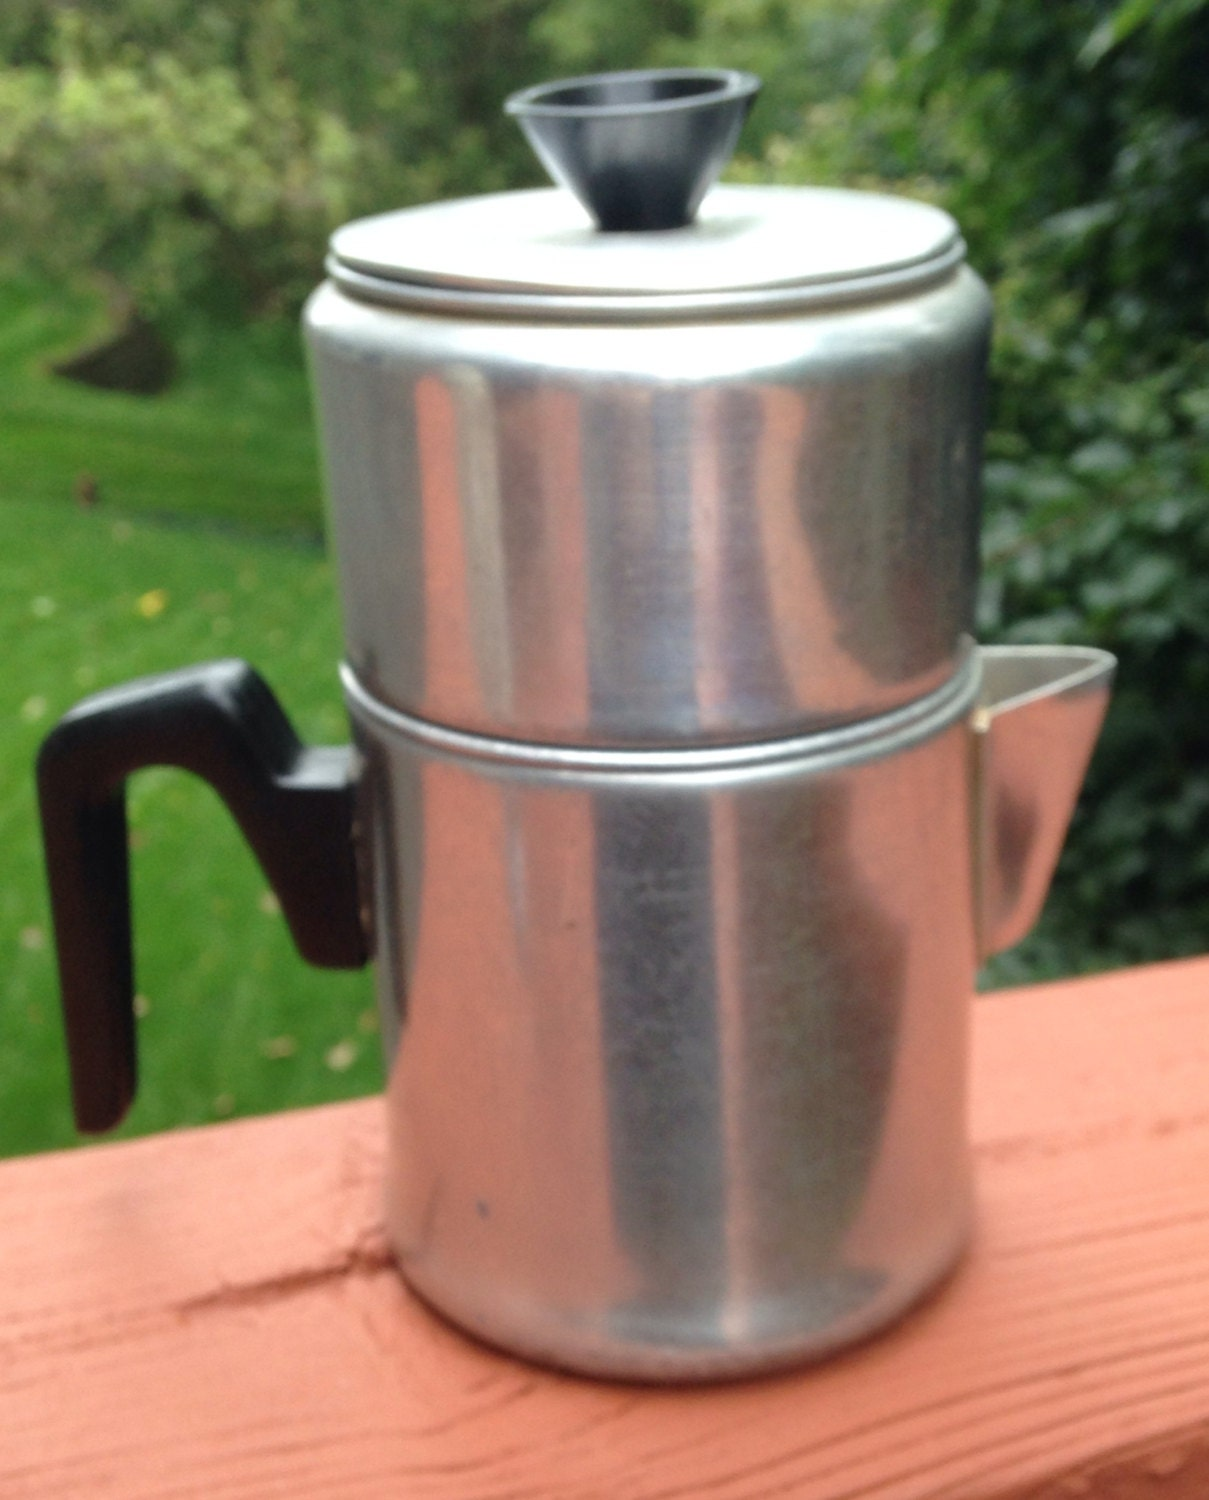 Electric Percolator Coffee Maker Reviews : Vintage Dripolator metal coffee pot. Non electric coffeepot.